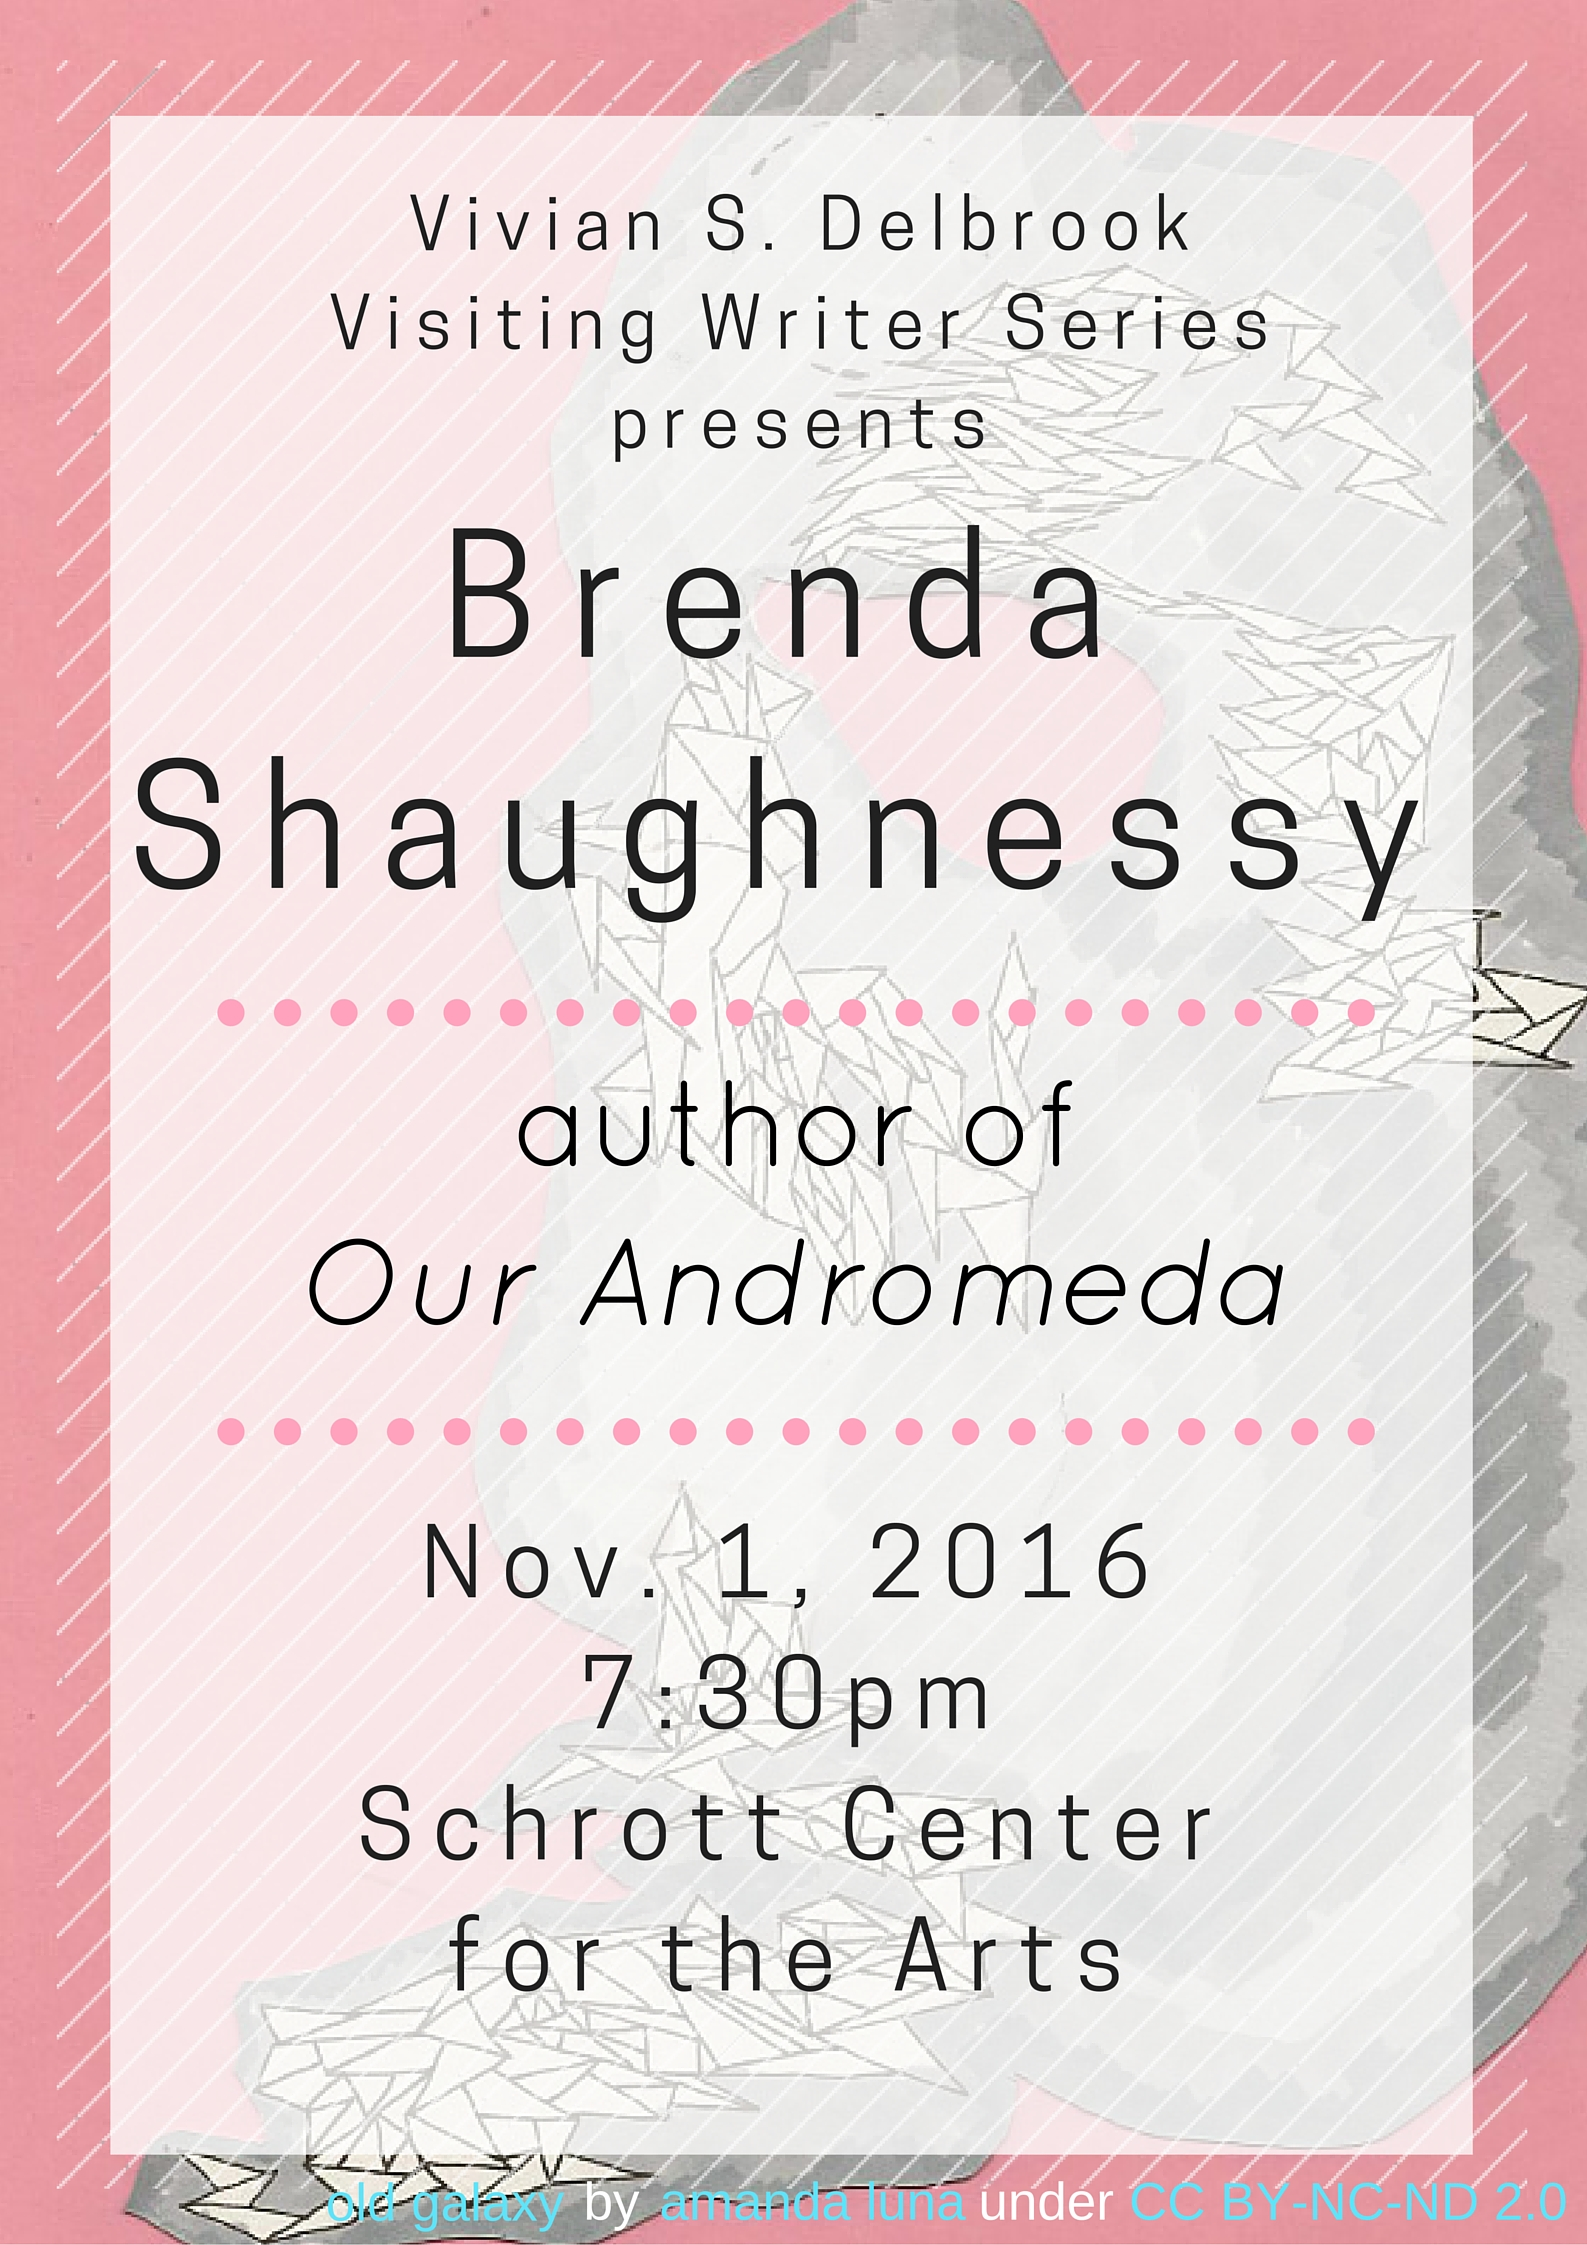 Brenda Shaughnessy, author of Our Andromeda, will be at the Schrott Center for the Arts on November 1, 2016, at 7:30pm.